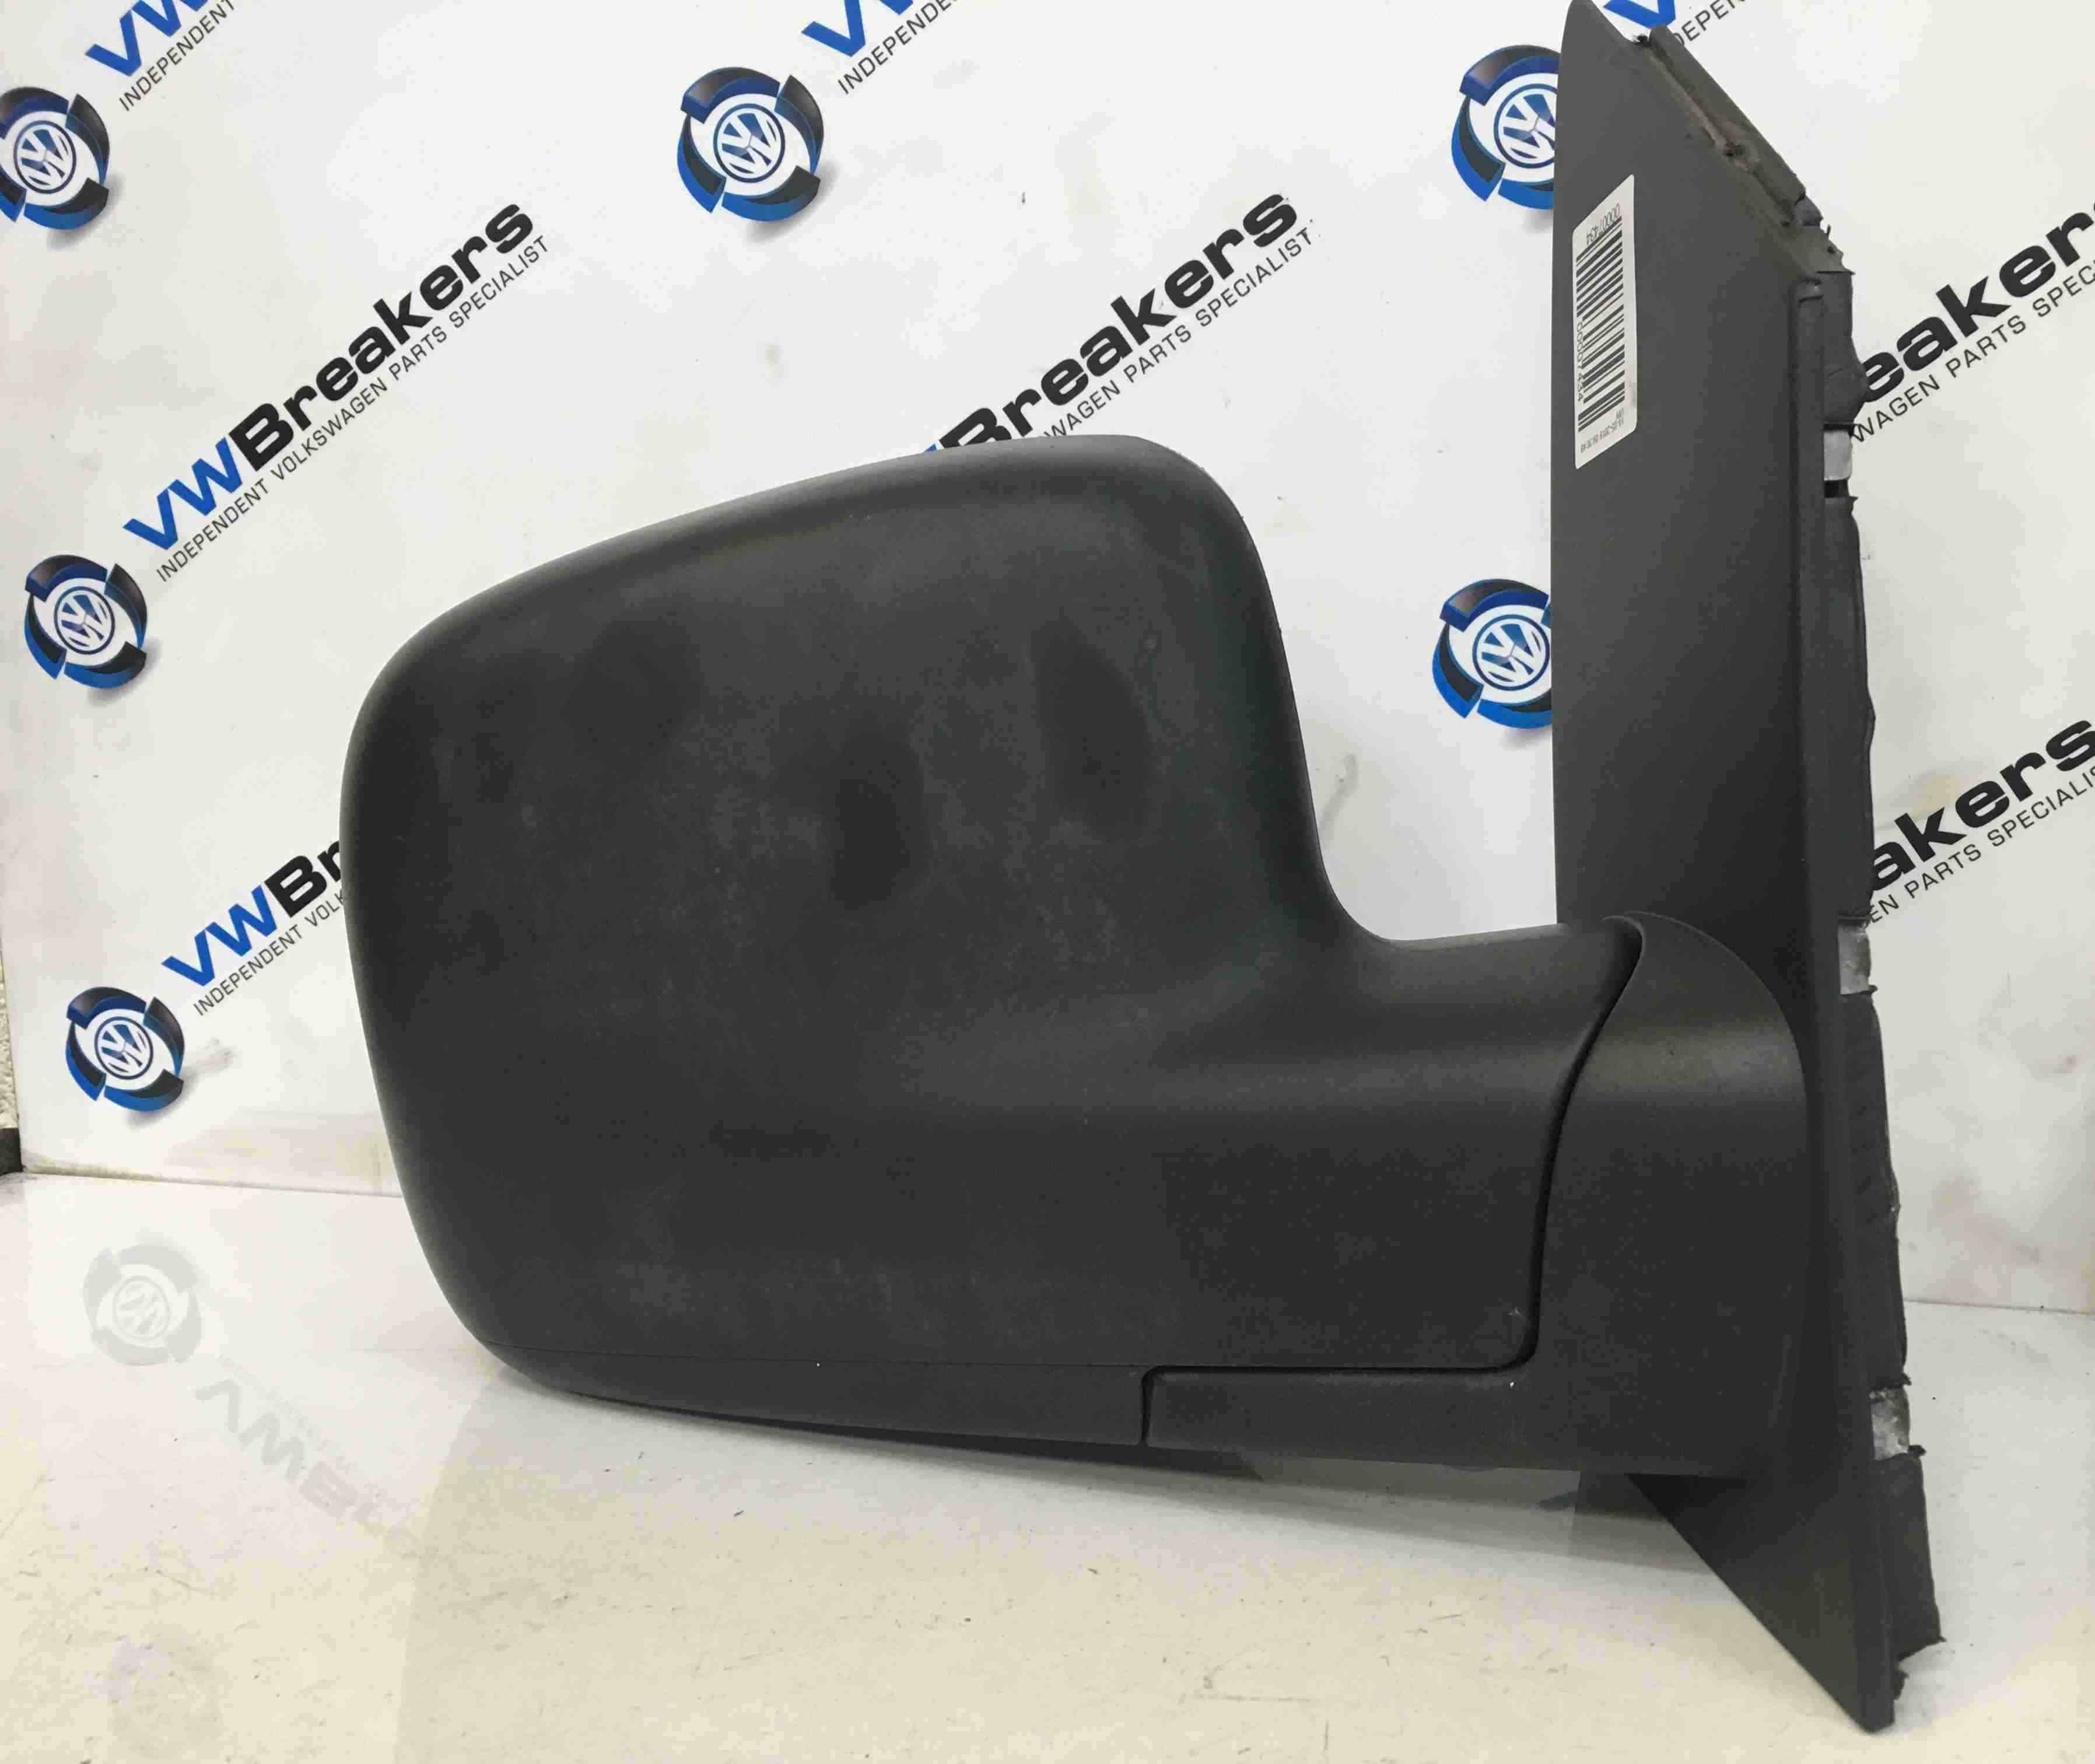 Volkswagen Caddy 2004-2010 Drivers OSF Wing Mirror Plain Black